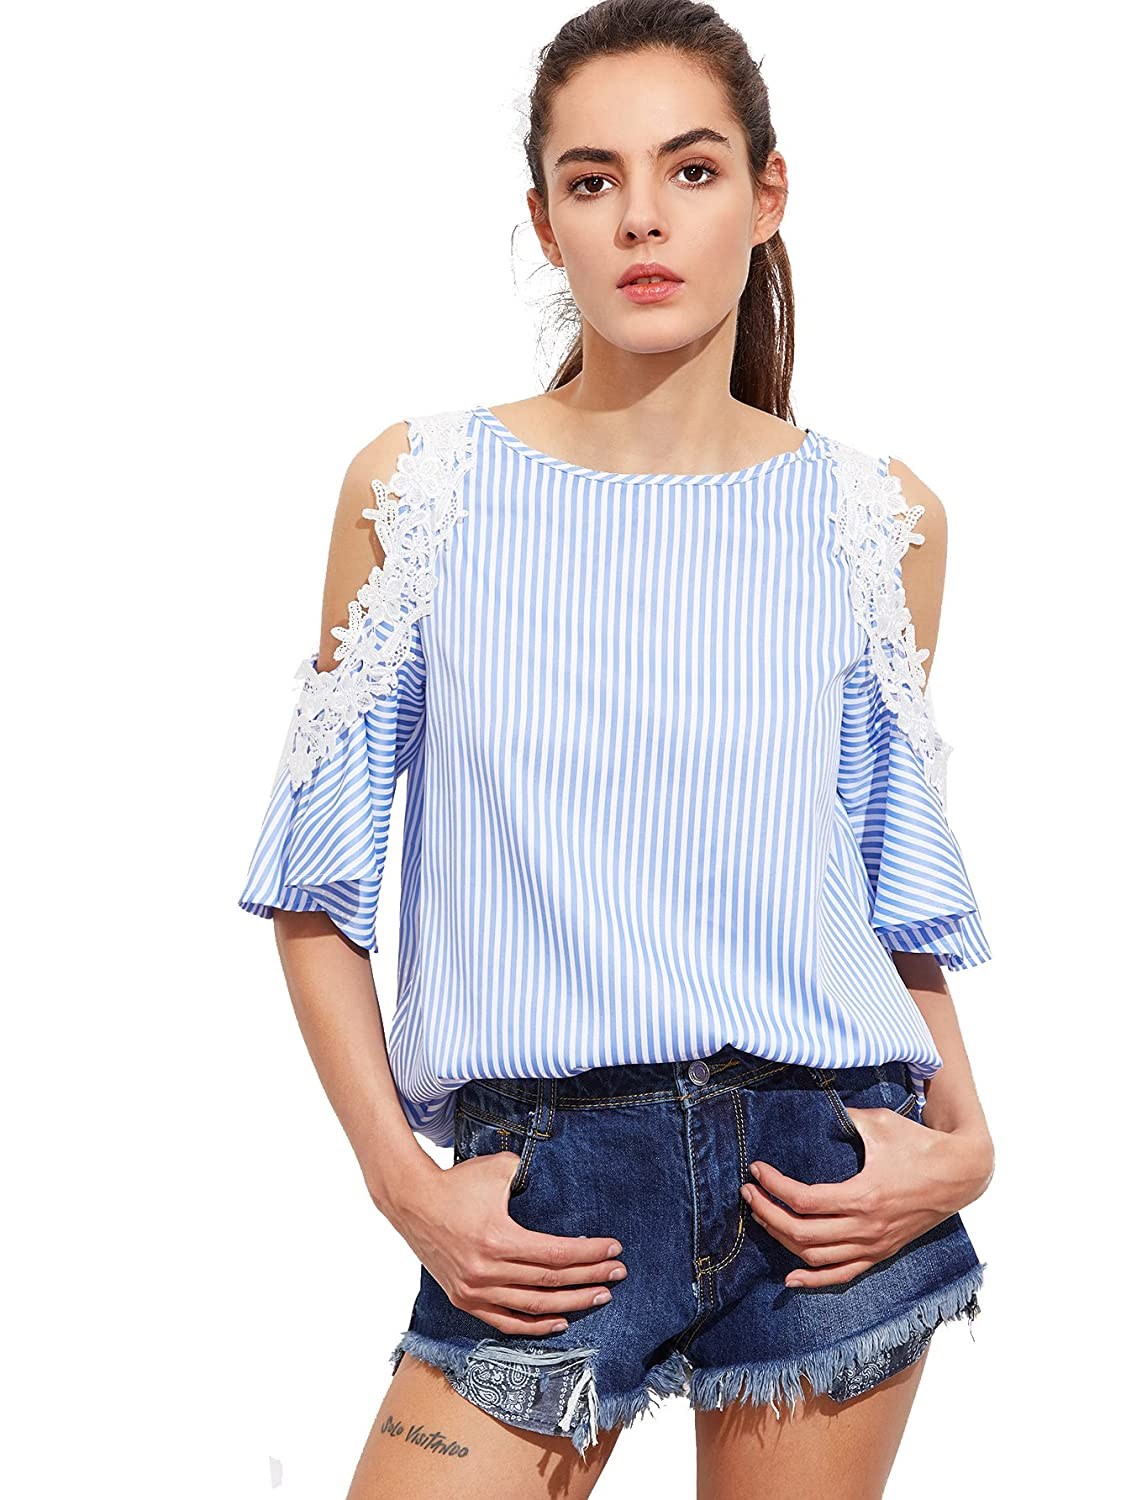 033ceb1a2b7ba0 Fashion and Modern Style,suitable for Travel,Party and daliy life.  Lightweight,soft and breathable. The knit T-shirt Top featuring open  Shoulder design, ...